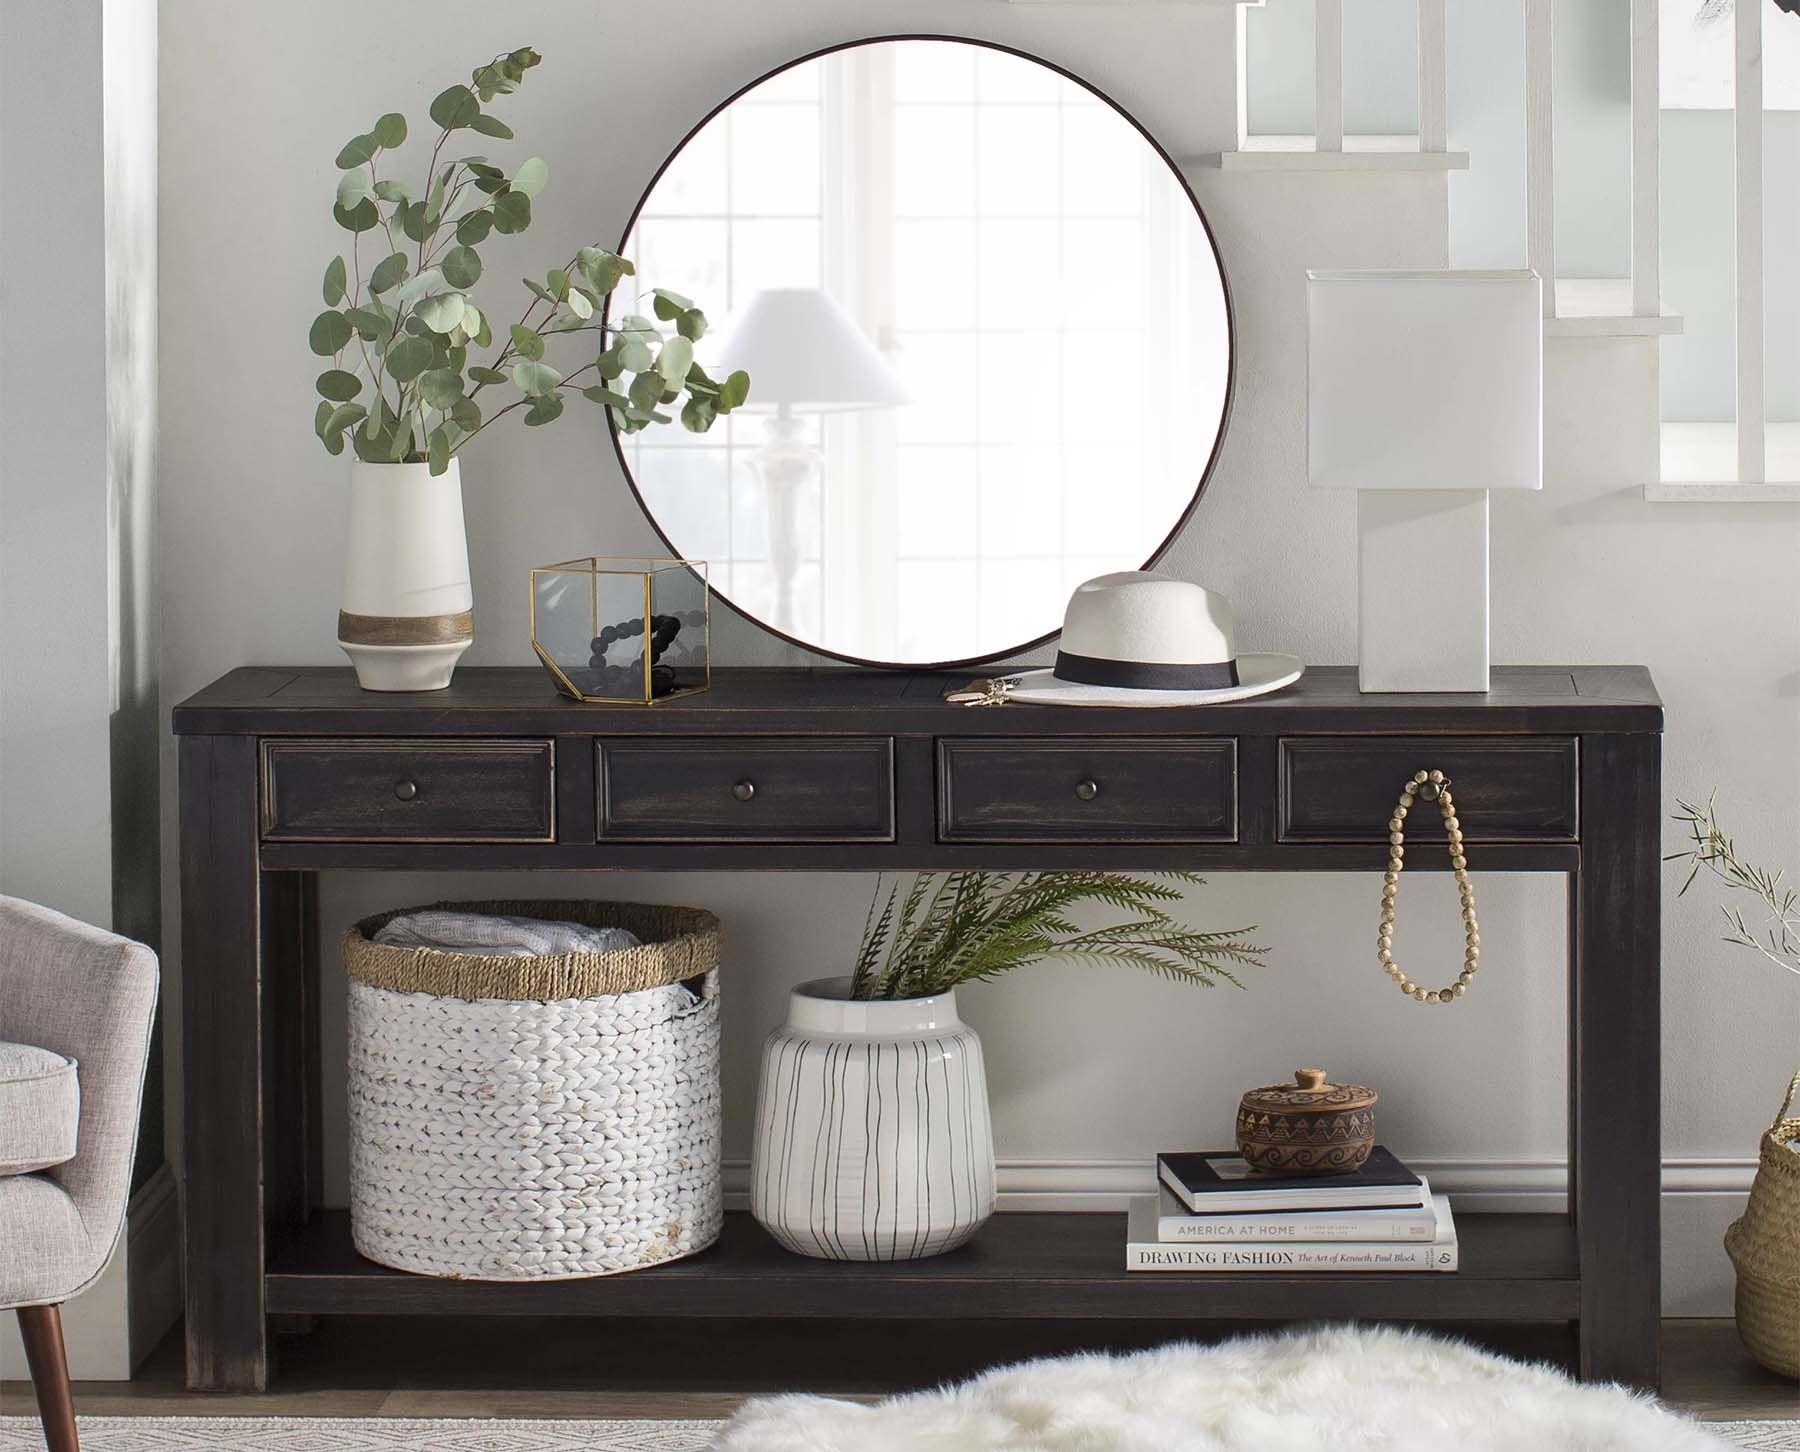 small foyer design ideas dark wood console table with round mirror and potted plant